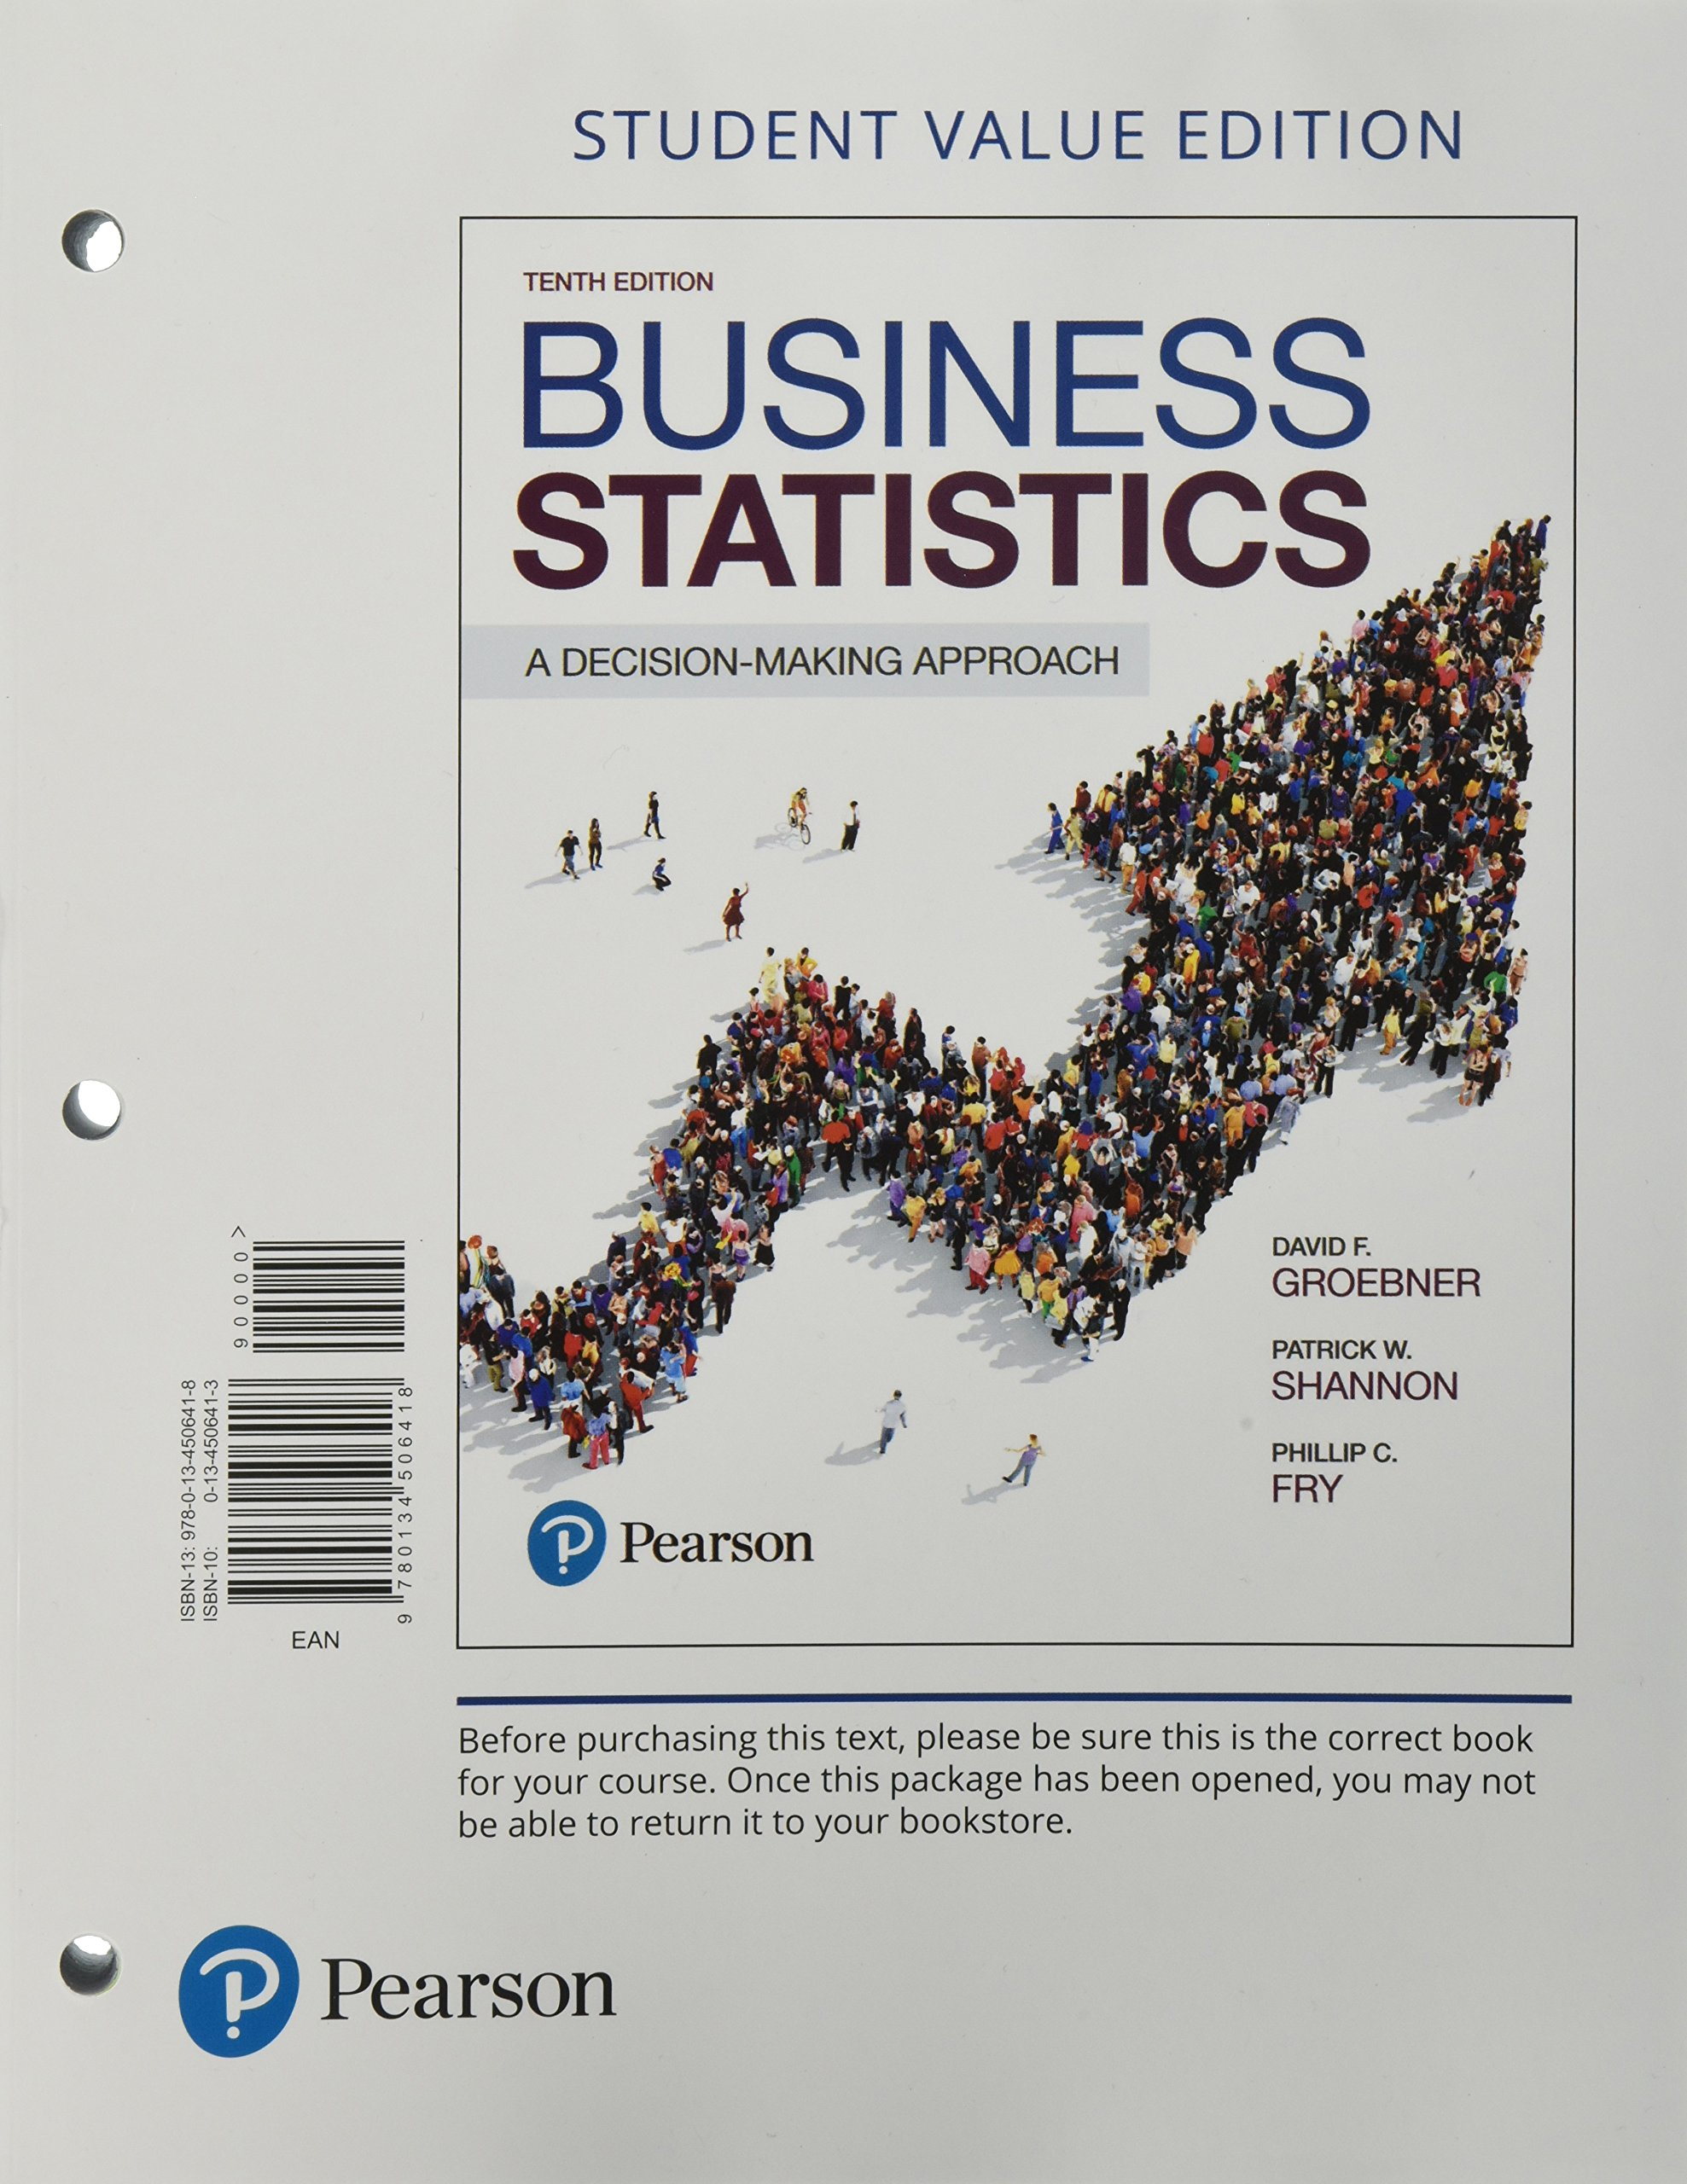 dd1d9a786 Business Statistics: A Decision Making Approach, Student Value Edition  (10th Edition) Loose Leaf – Student Edition, Jan 5 2017